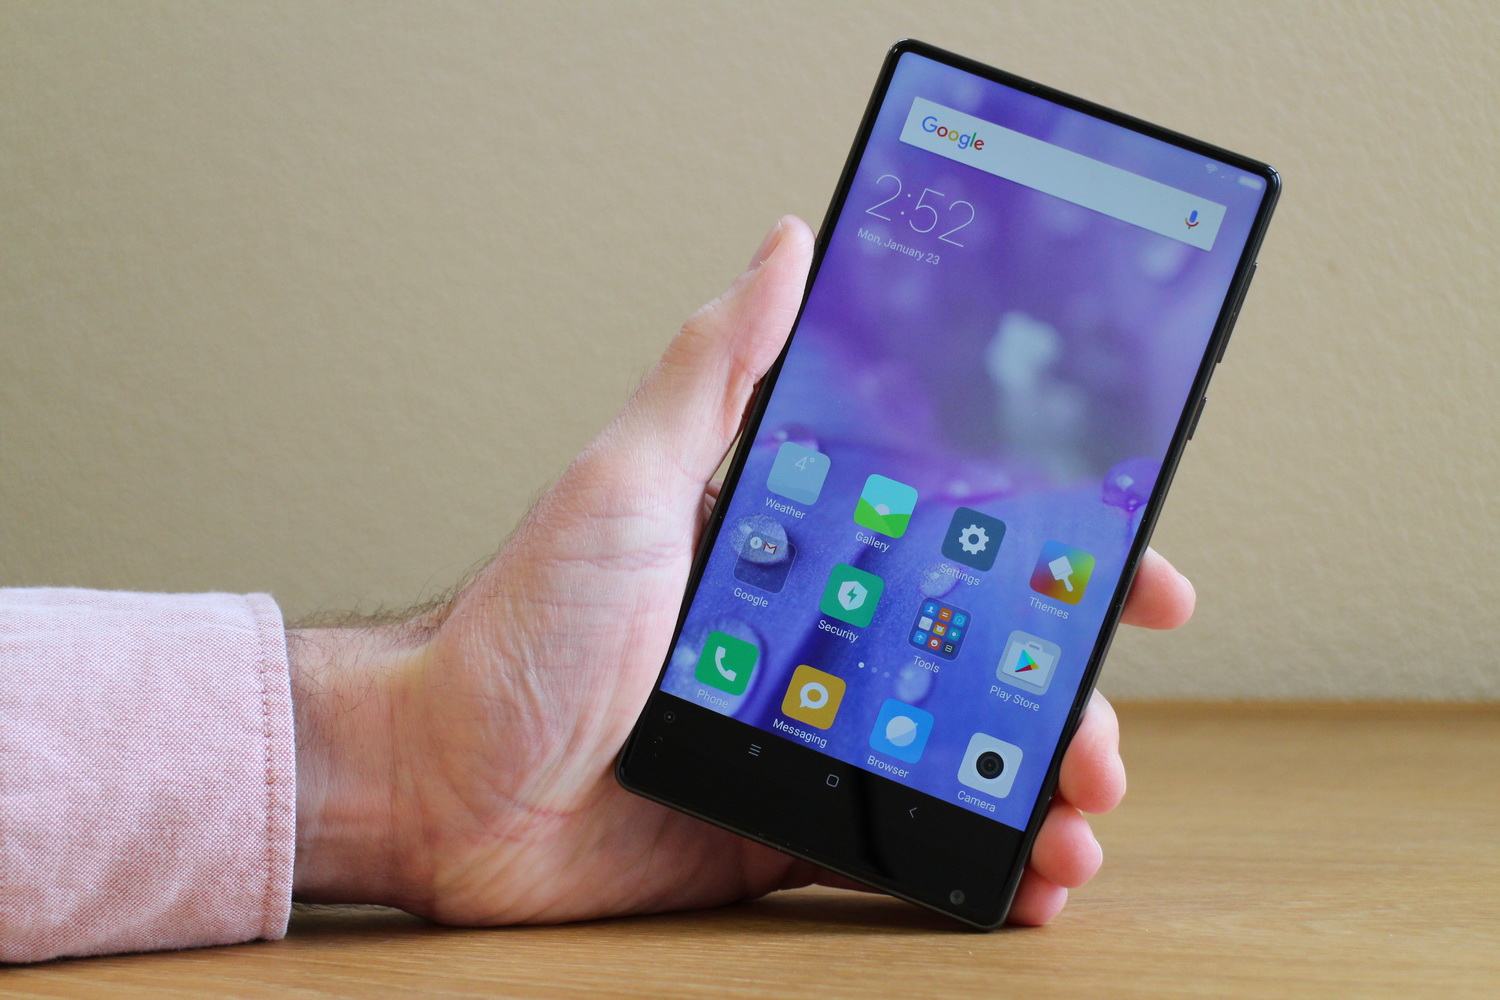 Xiaomi is reportedly ditching Snapdragon for its own Pinecone SoC